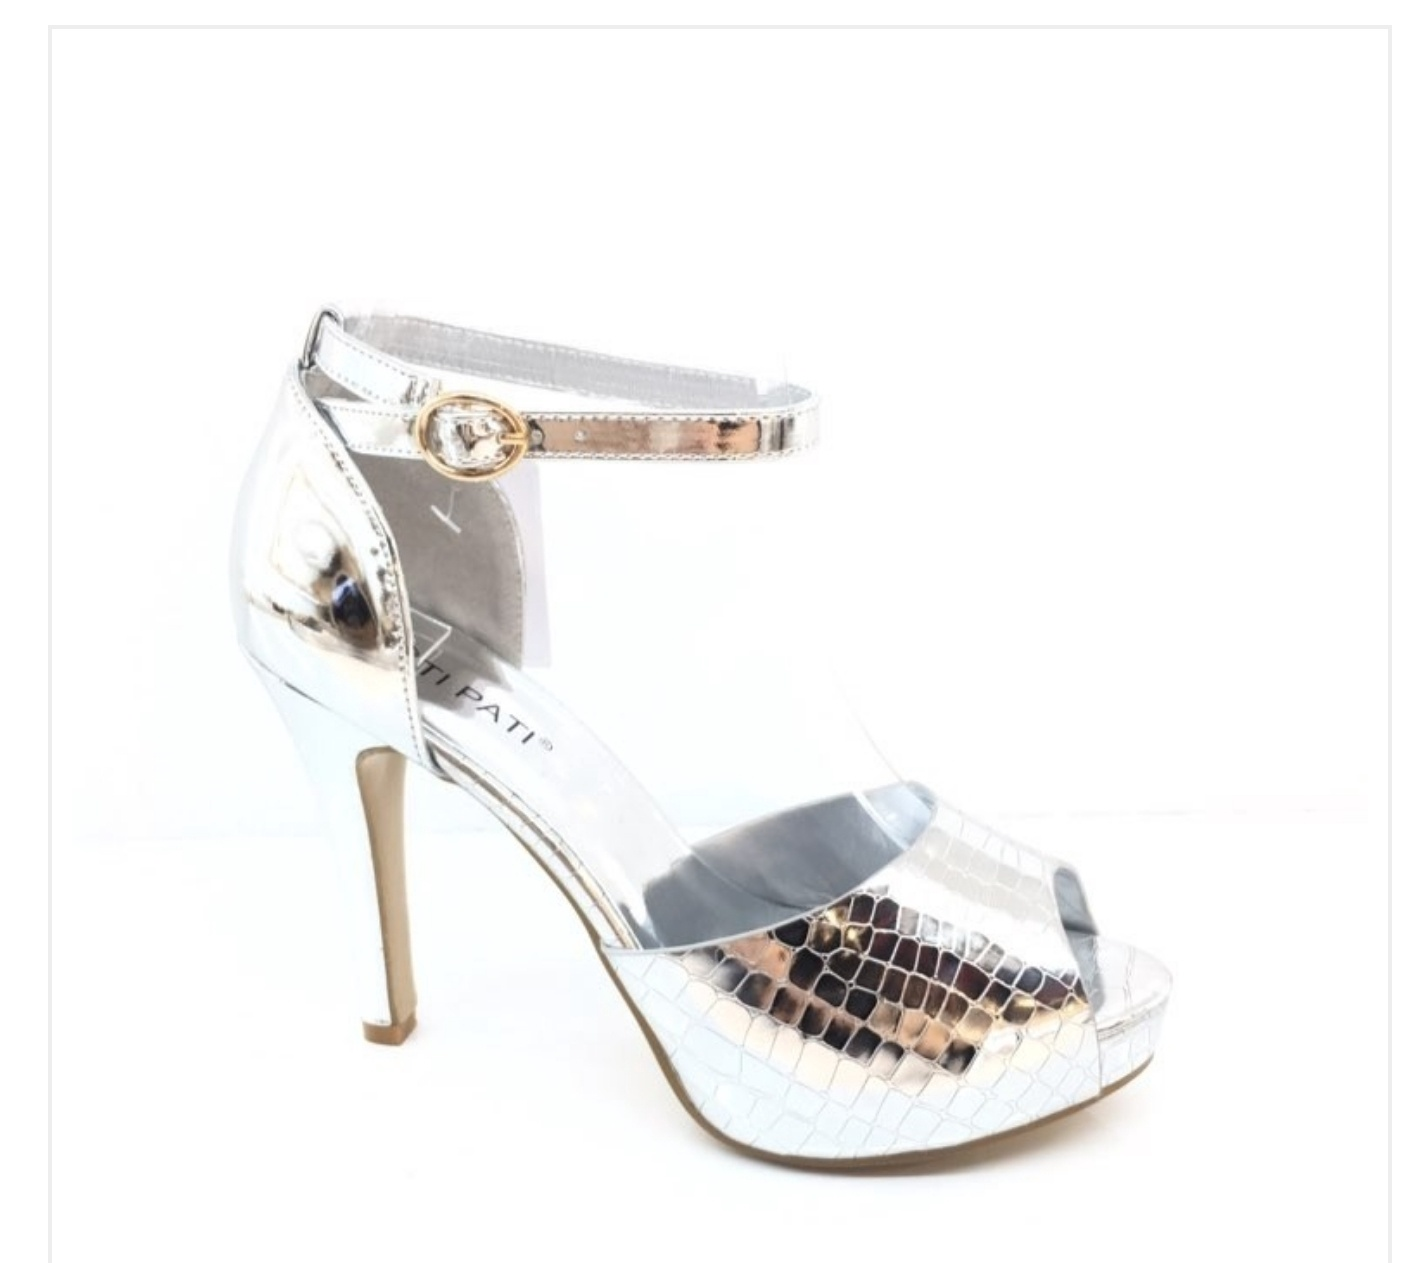 Stunning silver sandal shoes